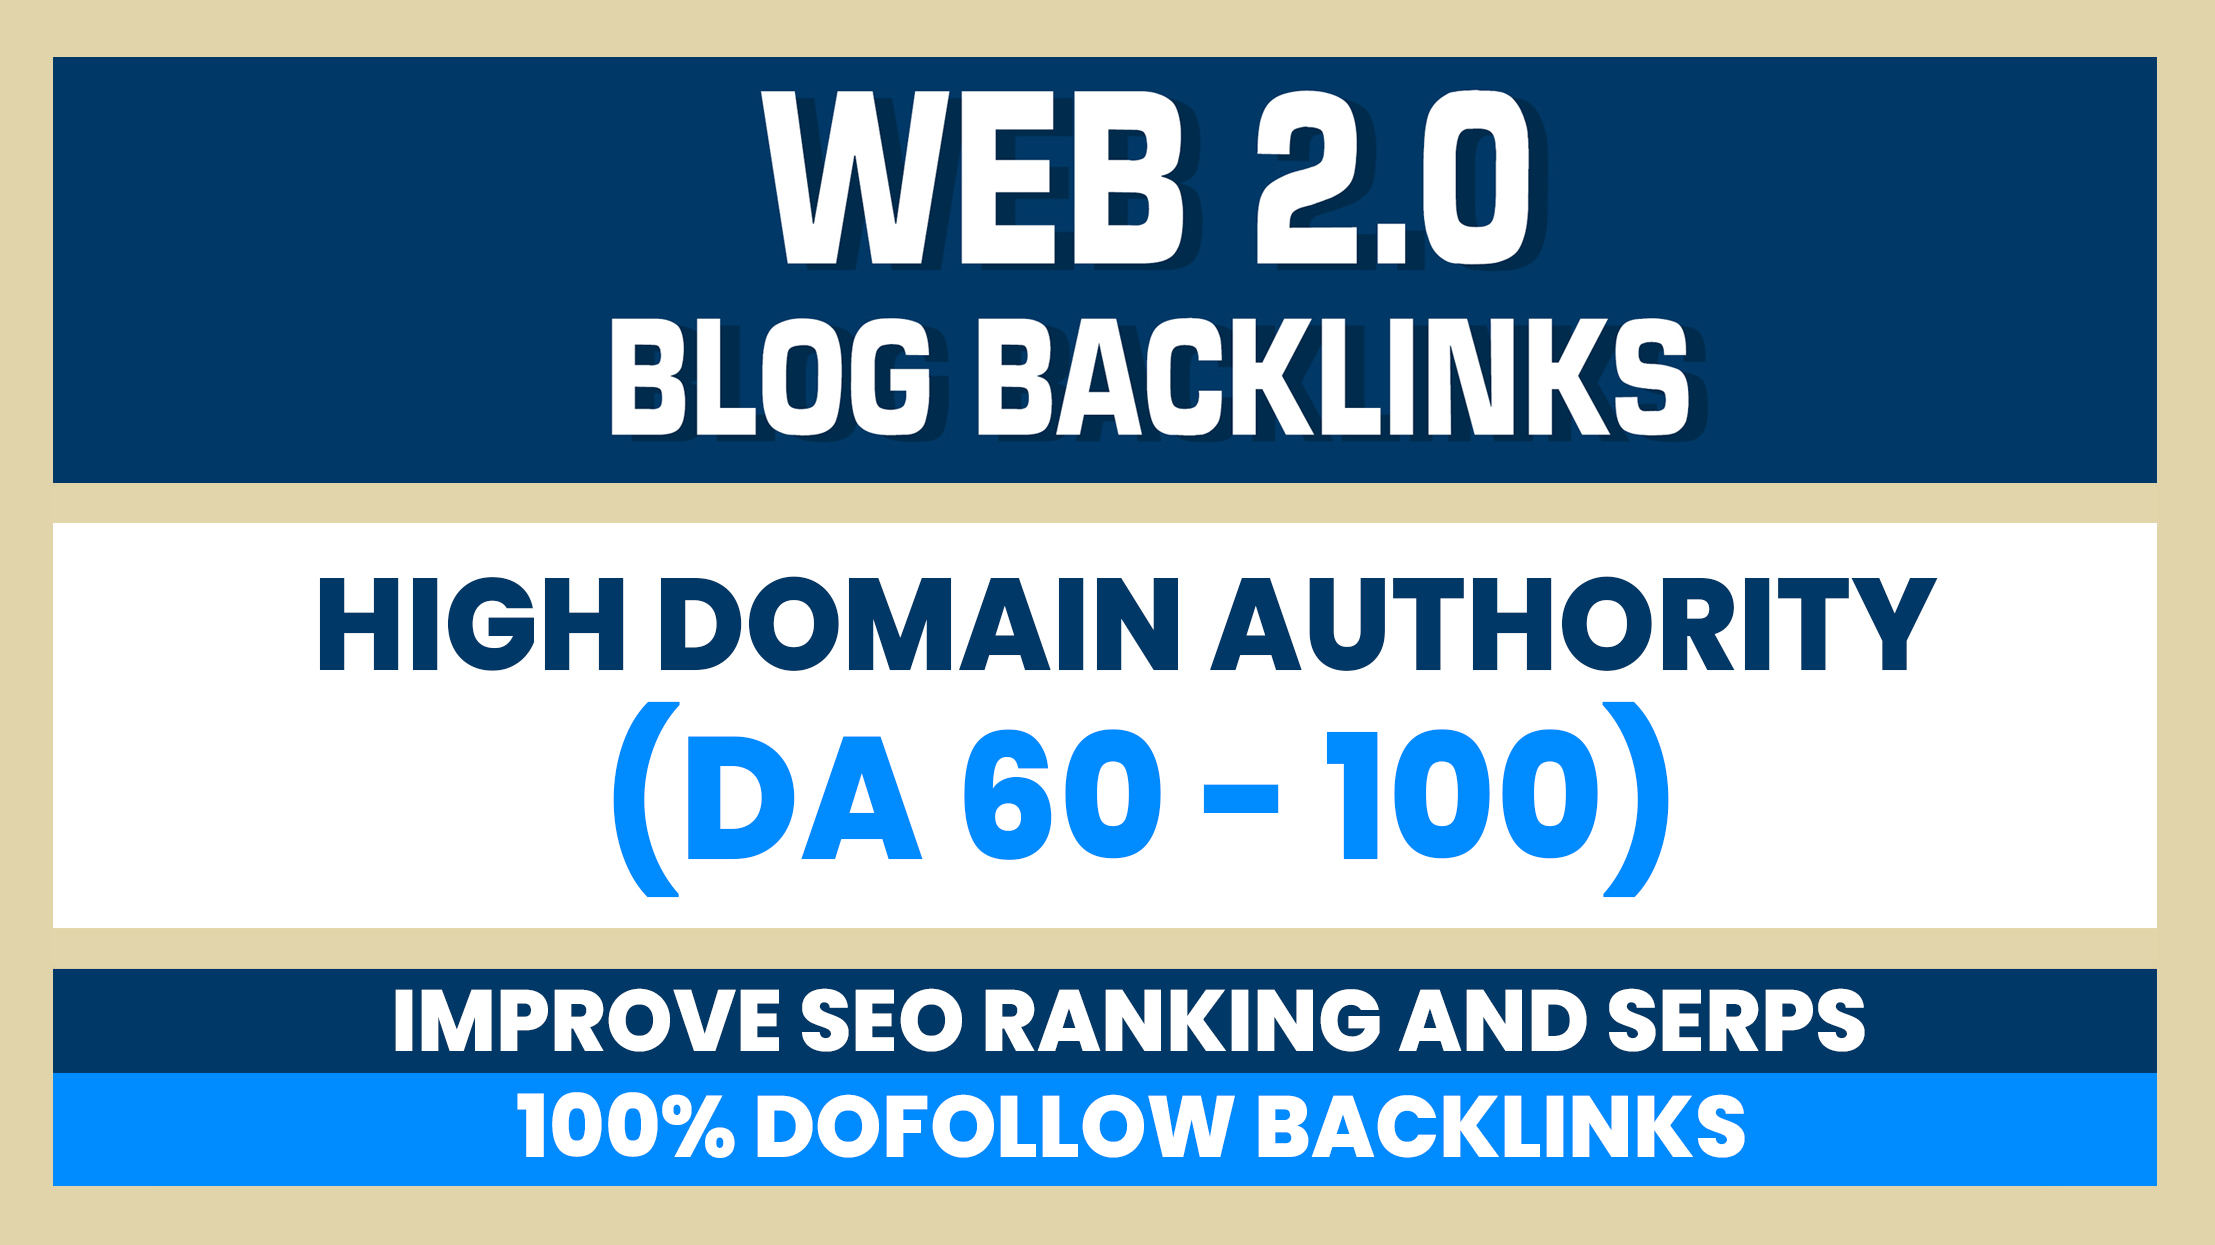 Build 10 Web 2.0 DA 60-100 home page blogs post backlinks